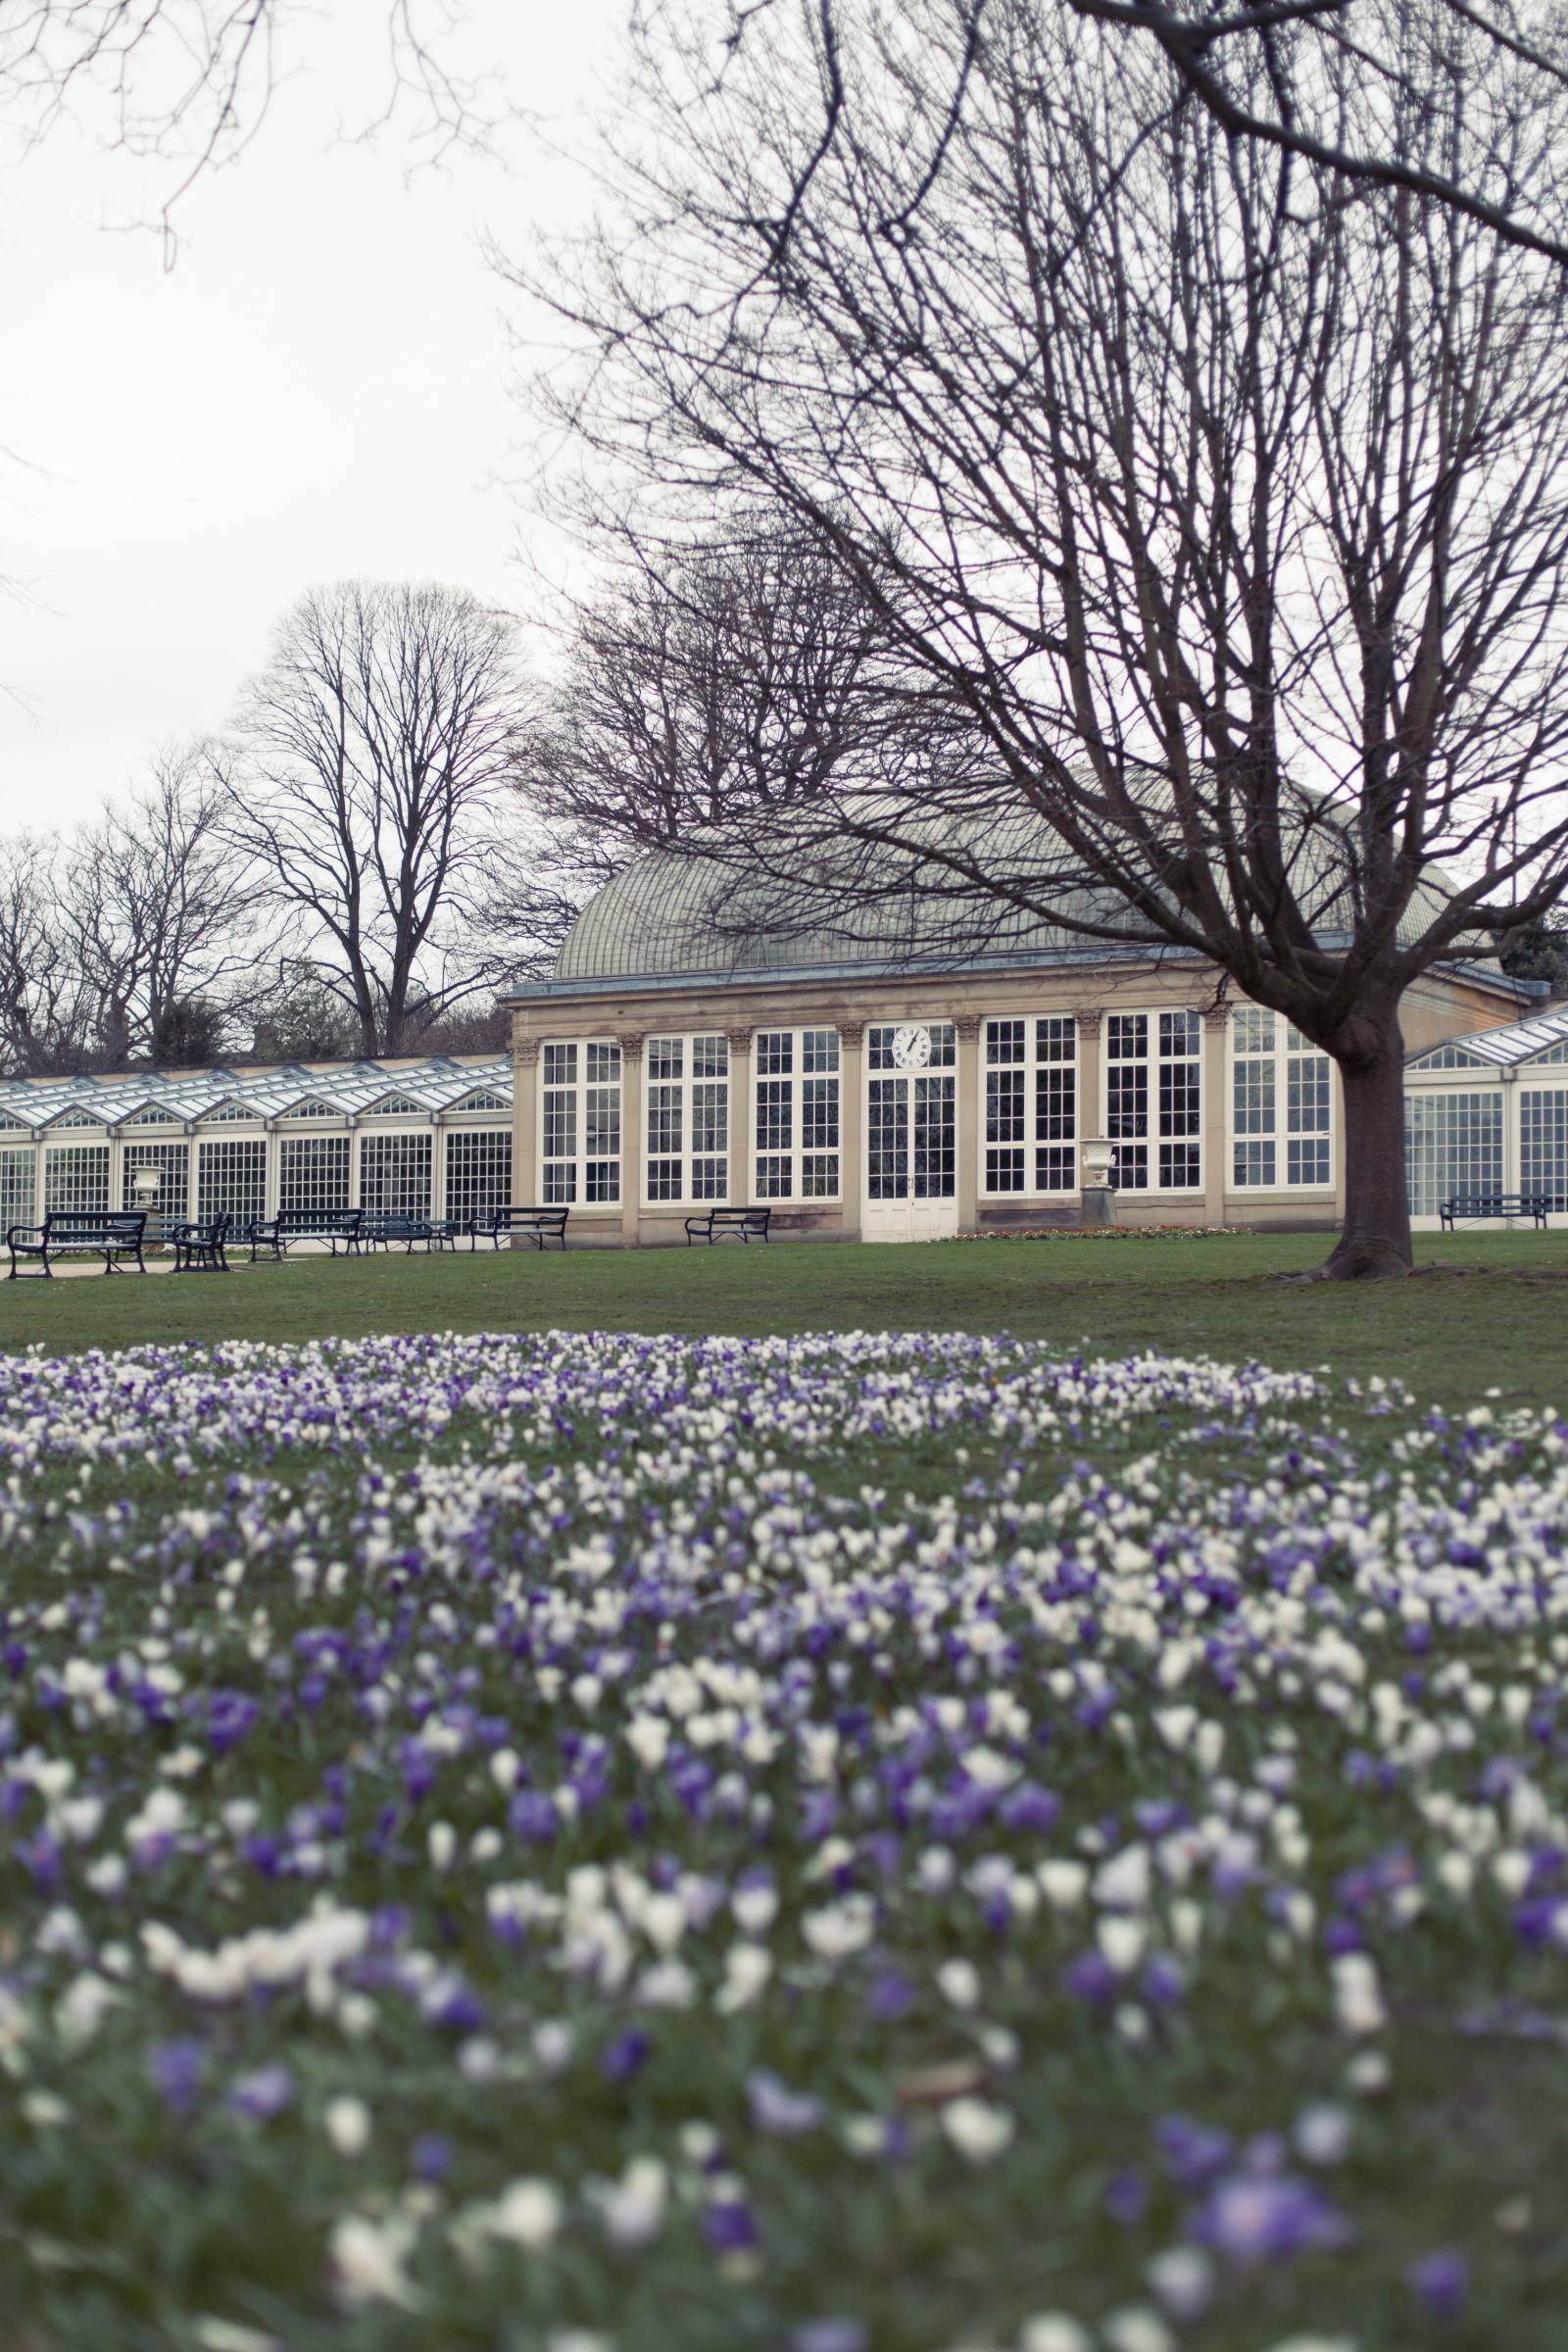 sheffield botanical garden a large victorian green house in spring with white and purple crocus